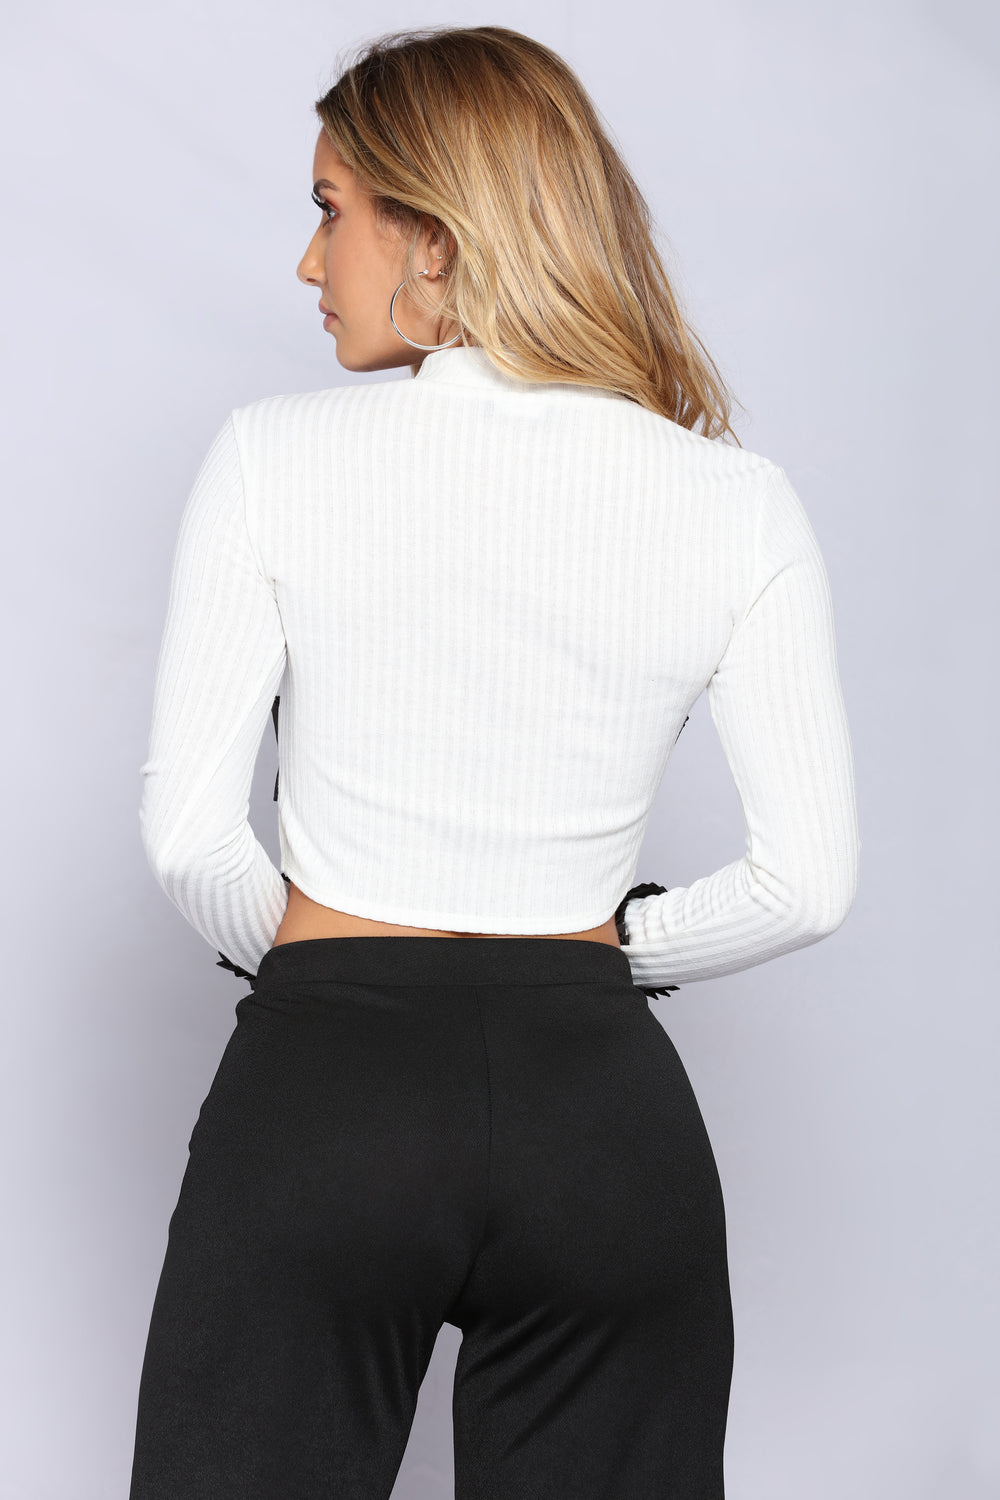 Just One Look Ribbed Top - Ivory